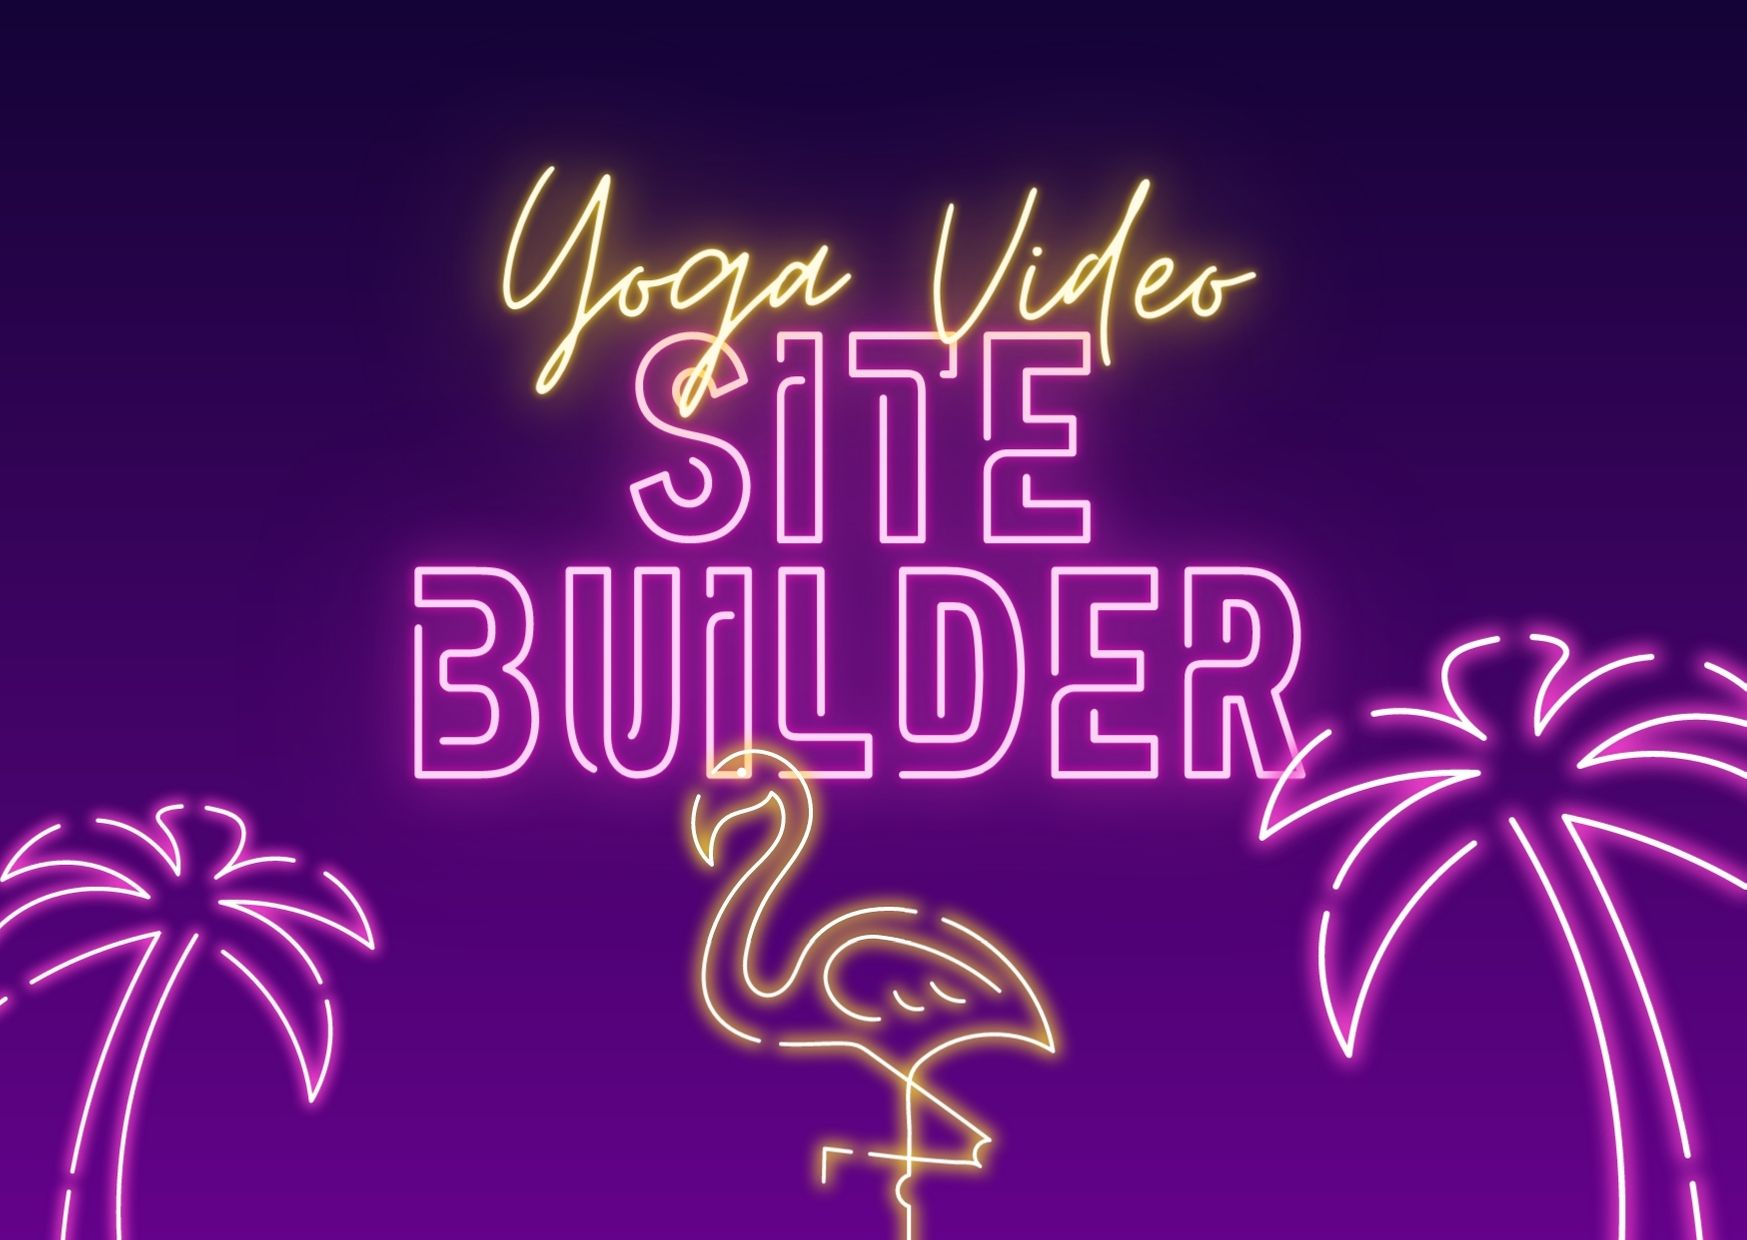 Yoga Video Site Builder to make your own money making yoga videos site